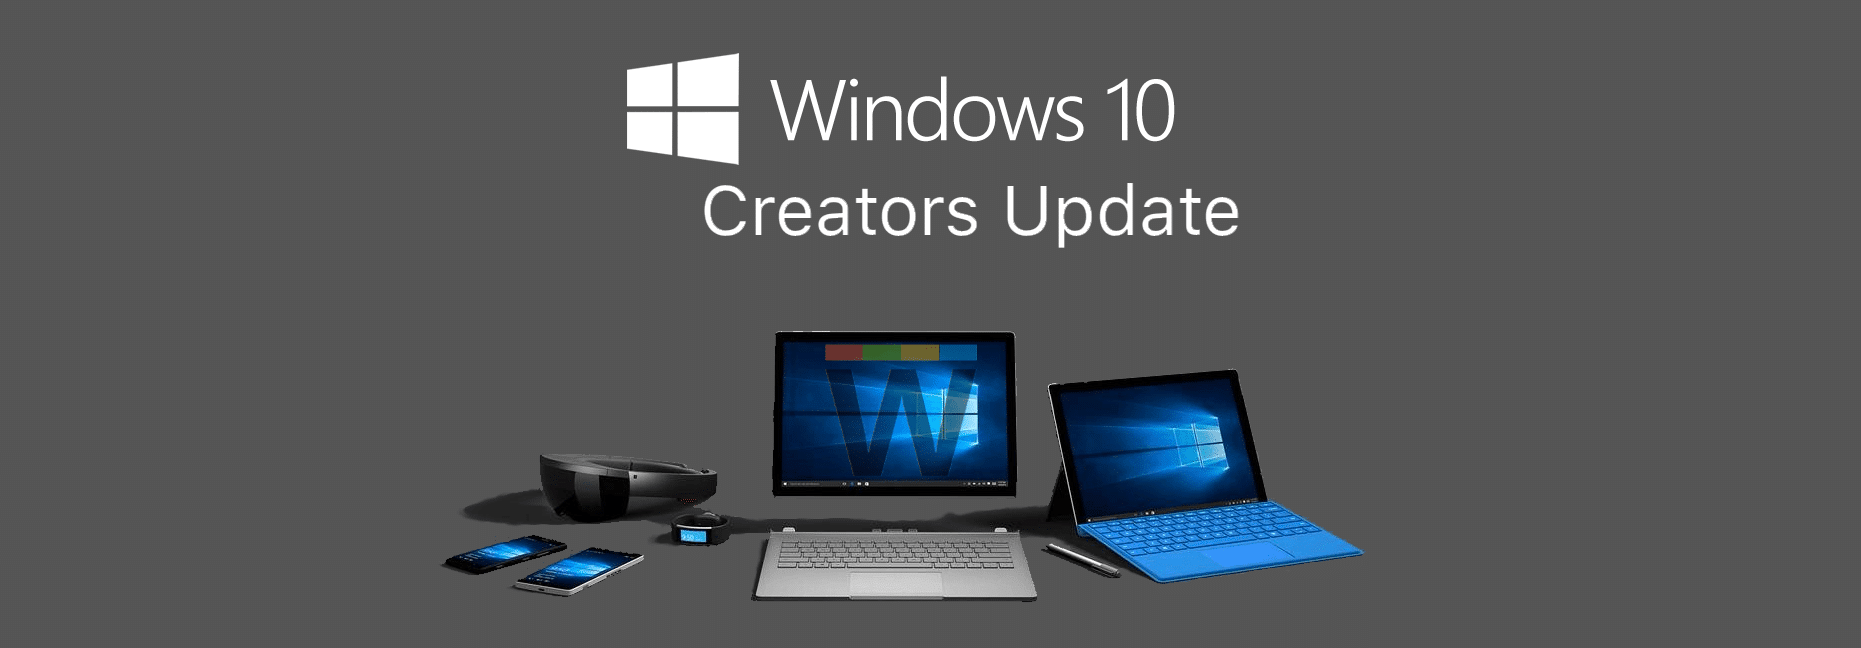 Windows 10 Creators Update : comment l'installer sans attendre.